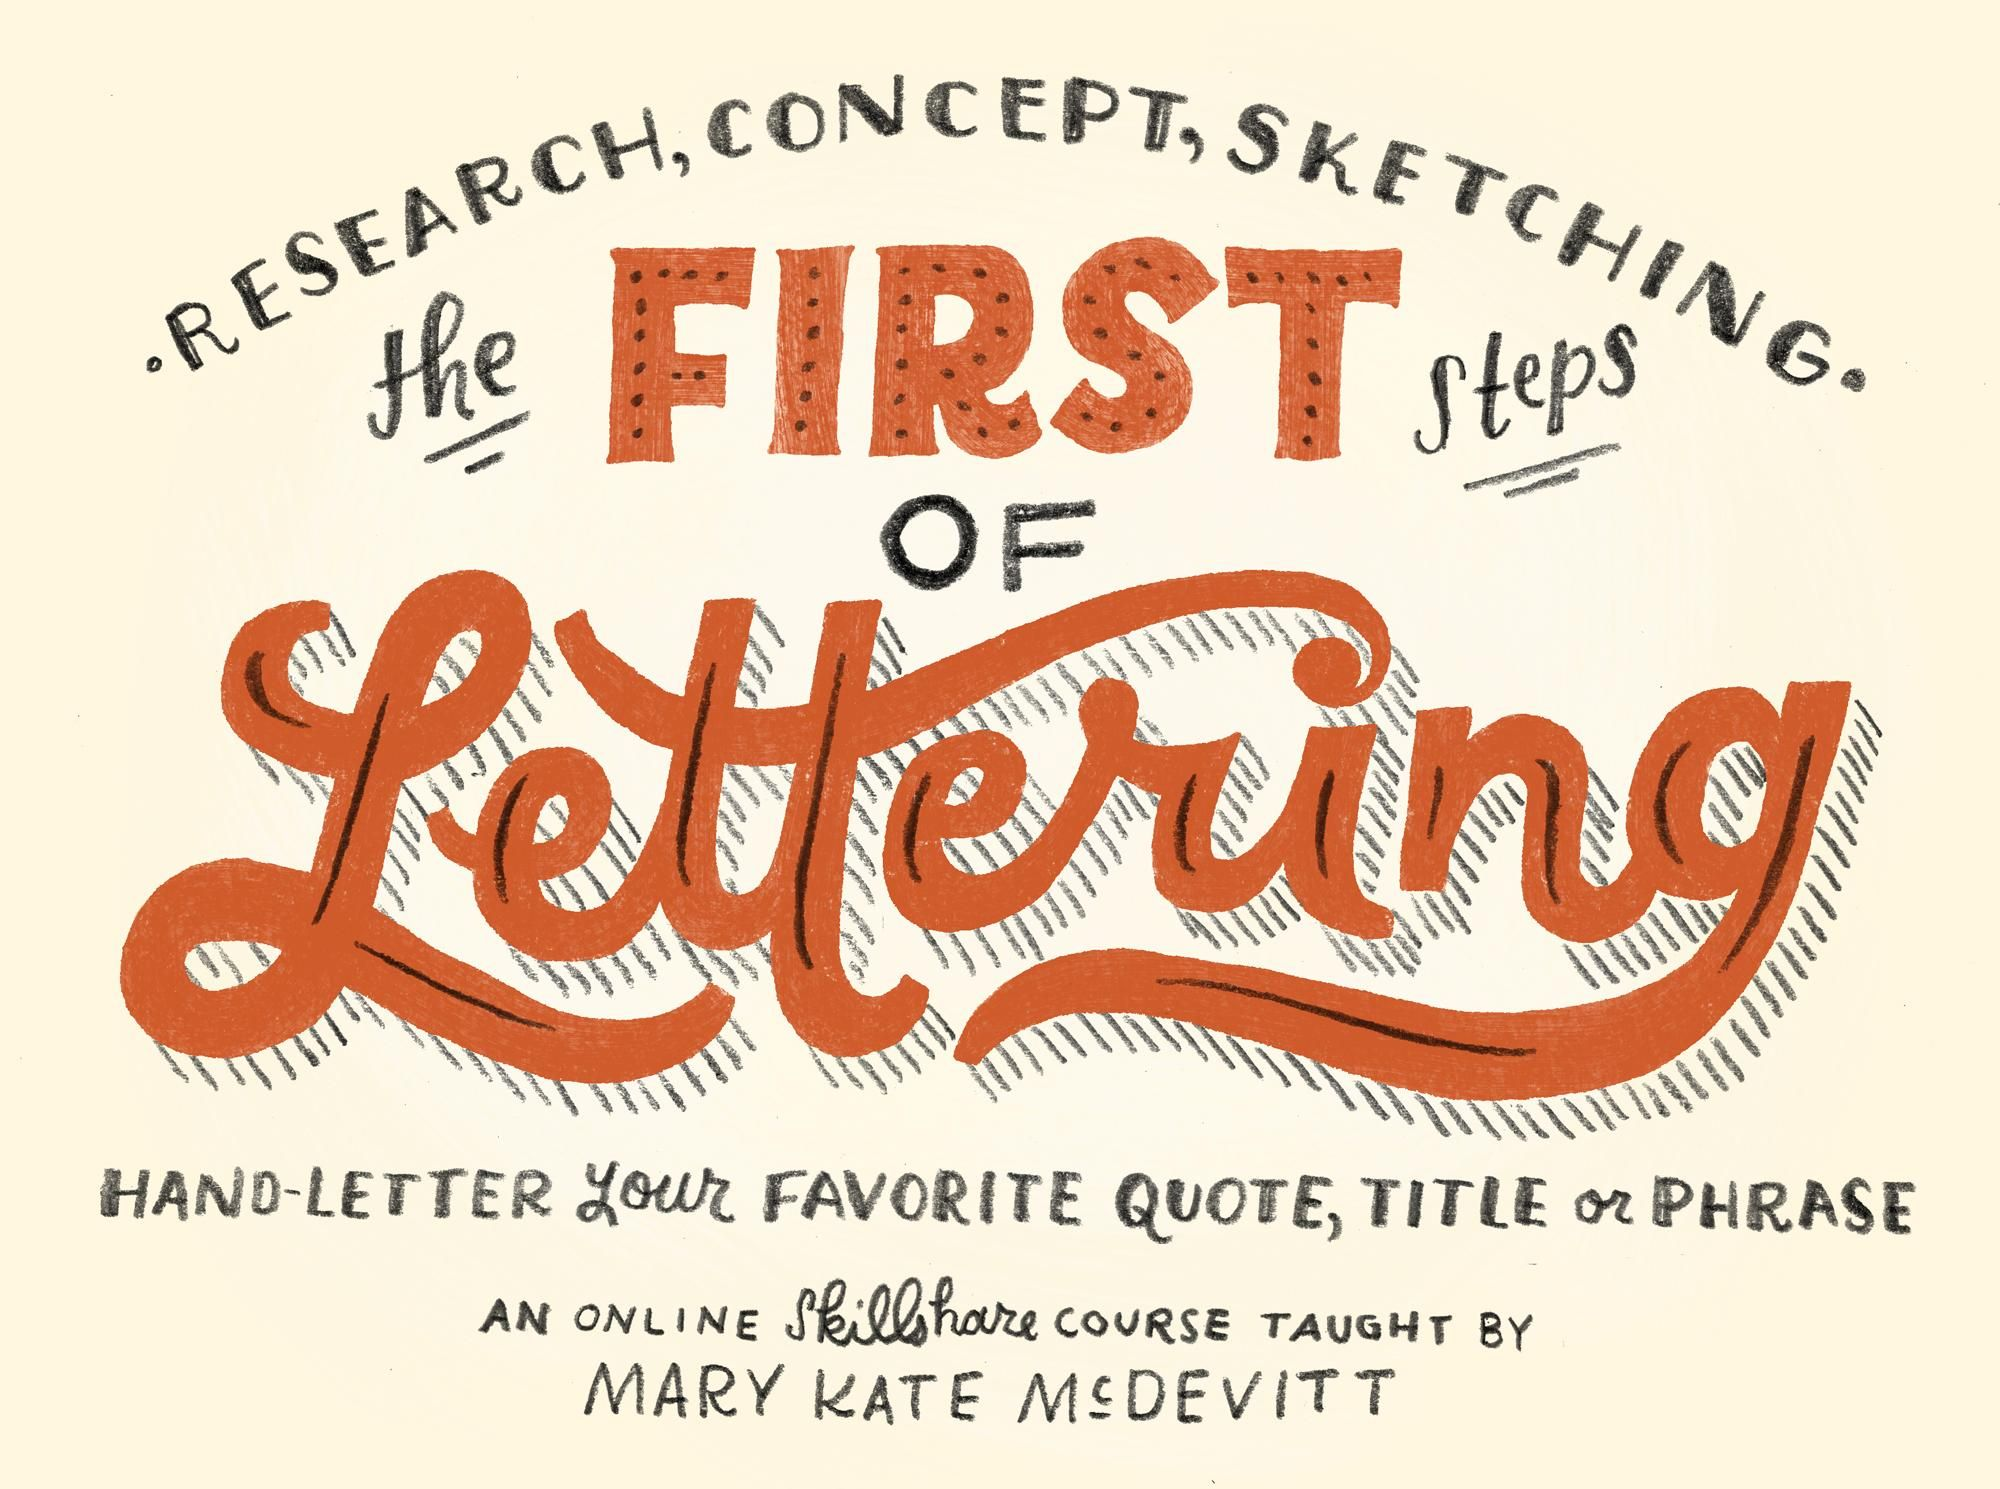 The first steps of hand lettering concept to sketch lettering i the first steps of hand lettering concept to sketch lettering i baditri Images